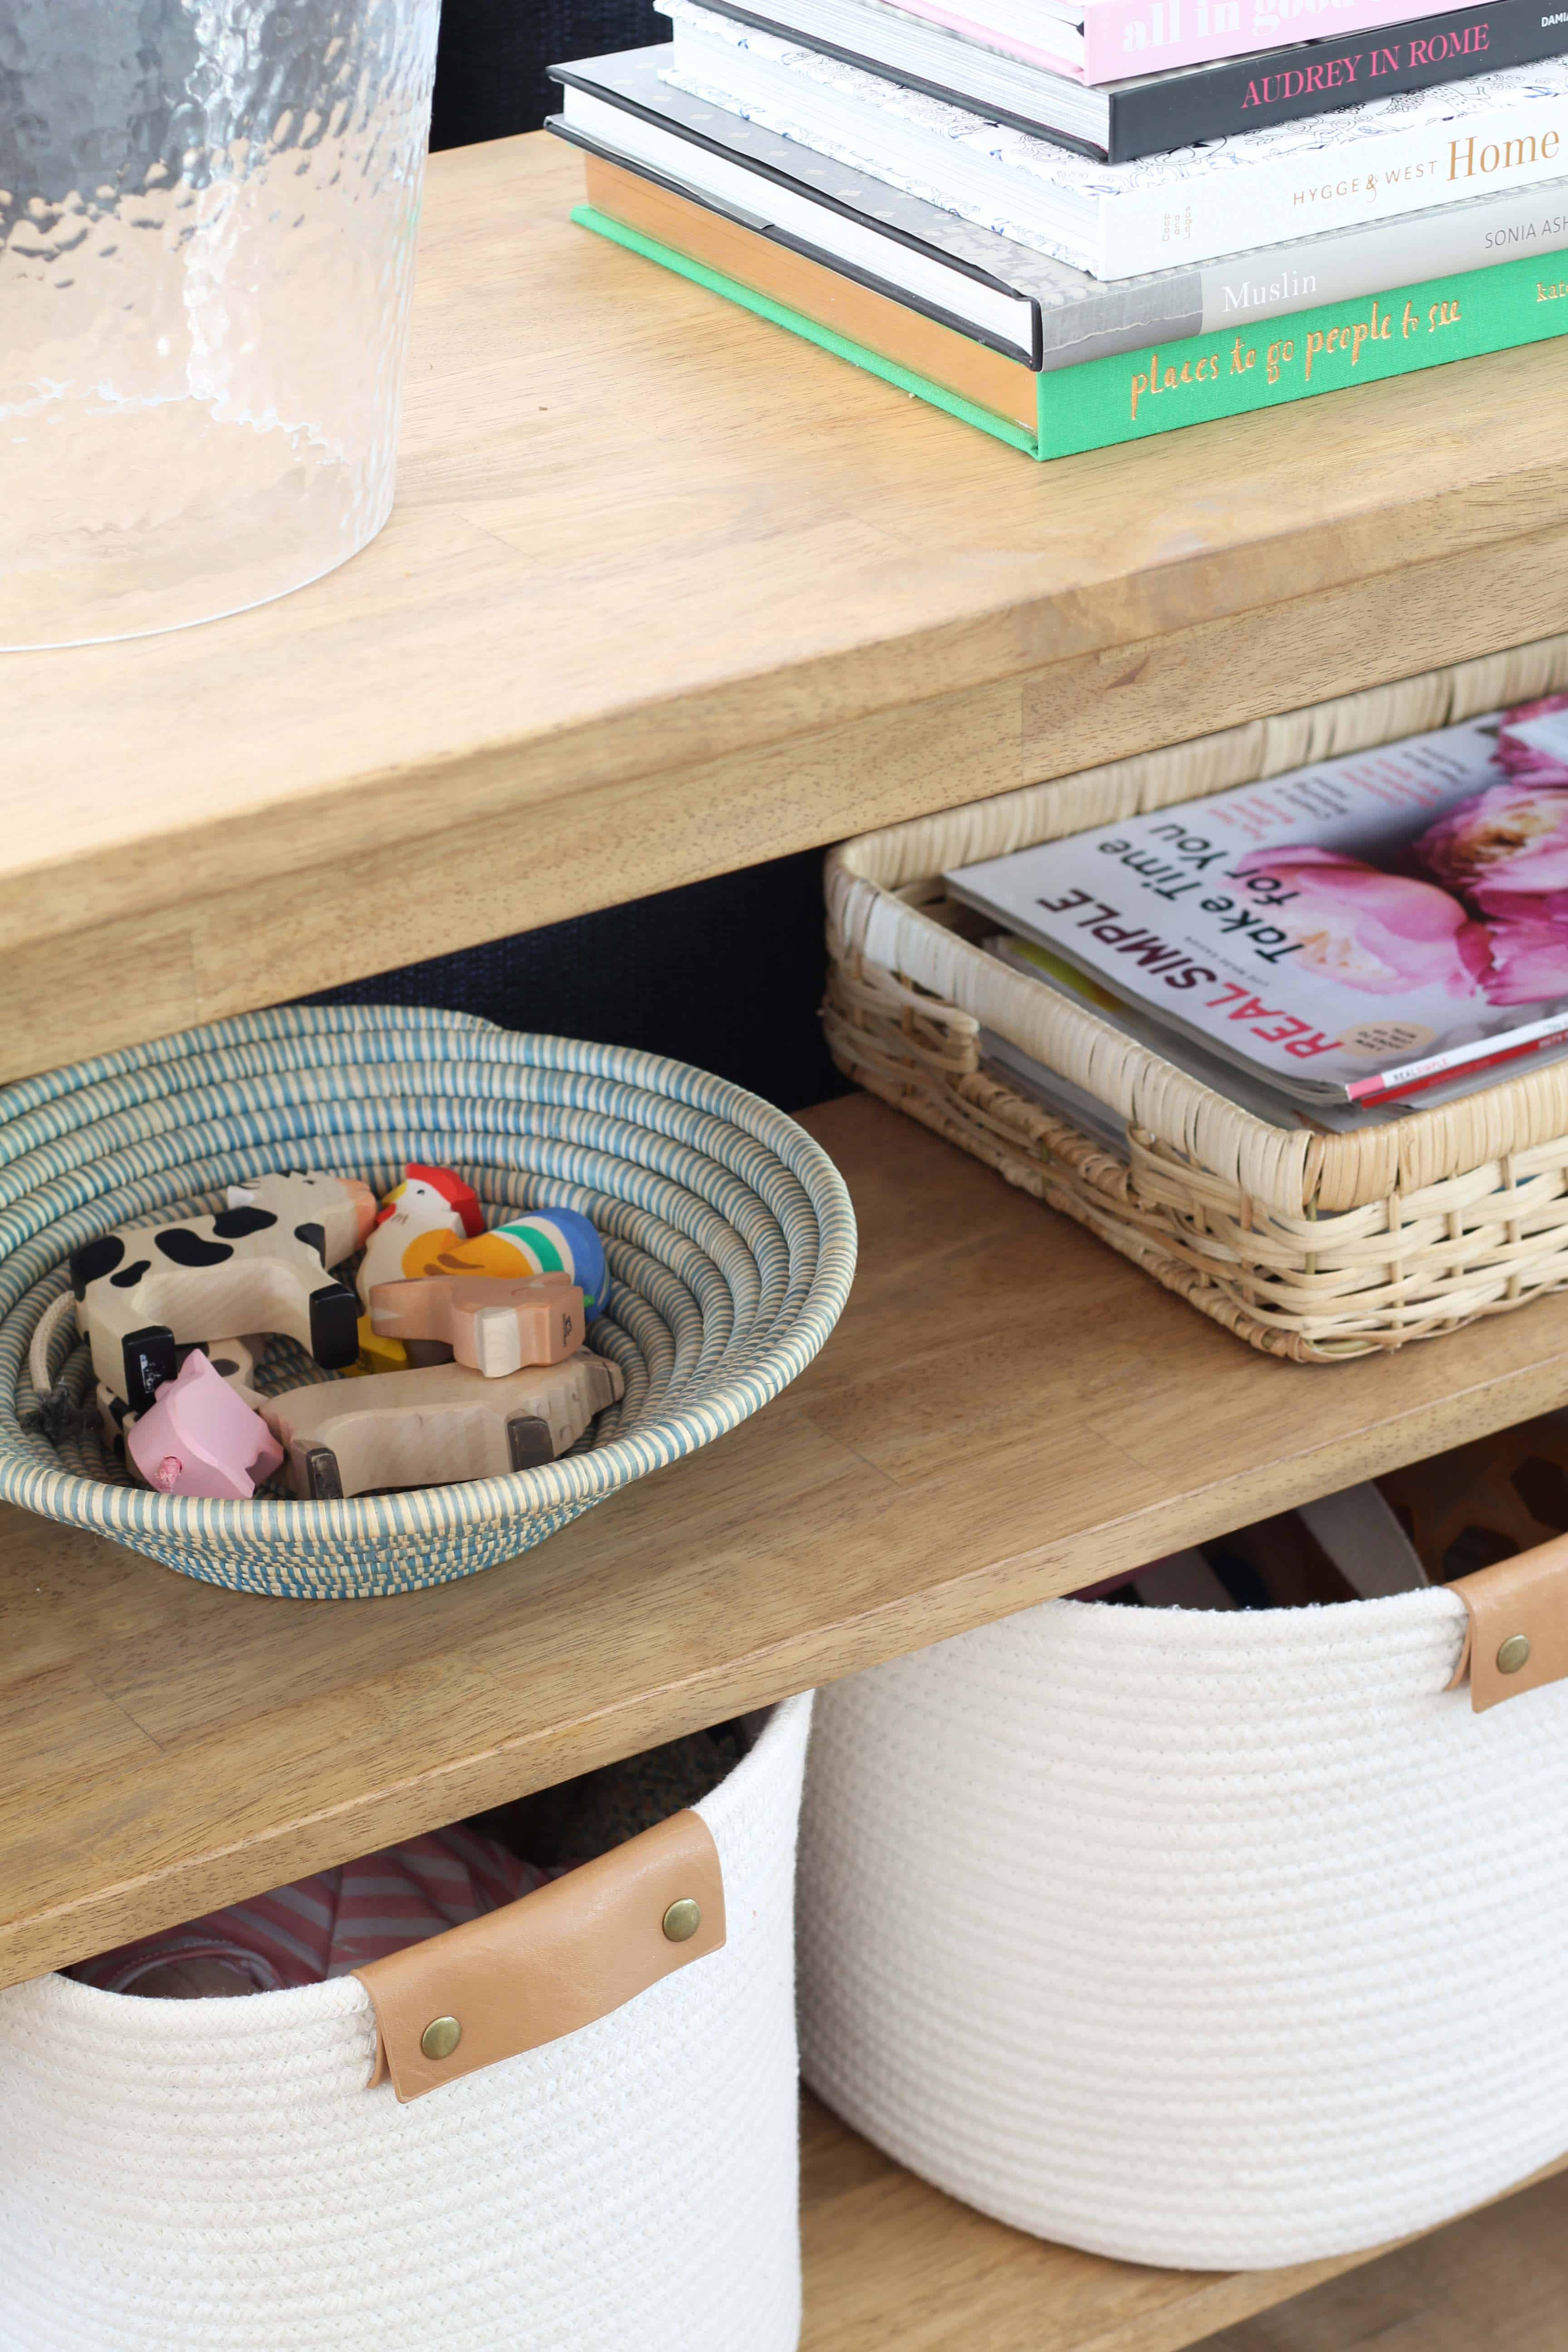 farmhouse console table, wooden toy animals, target rope baskets with leather handles